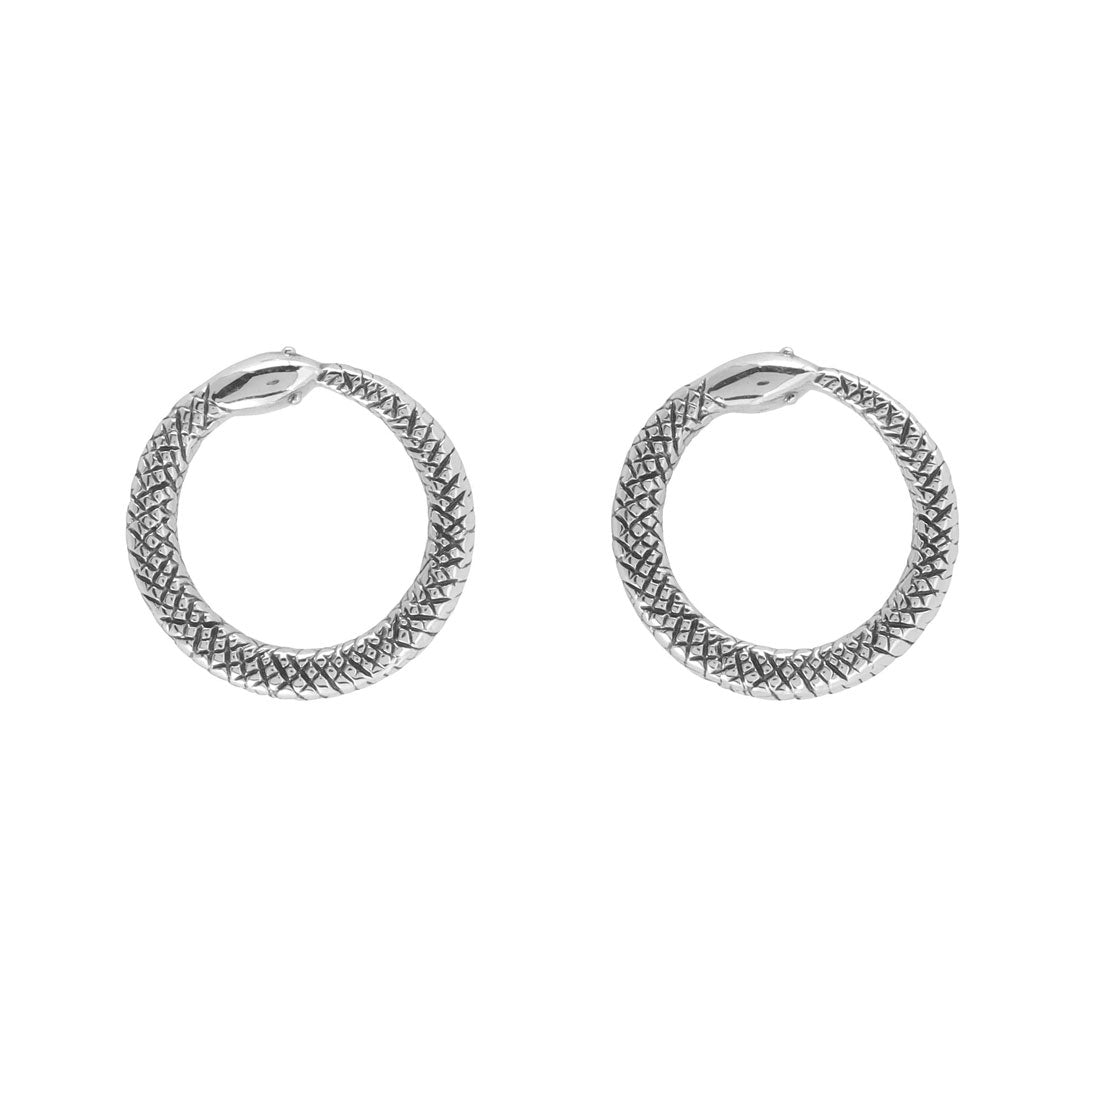 Midsummer Star Earrings Ouroboros Studs